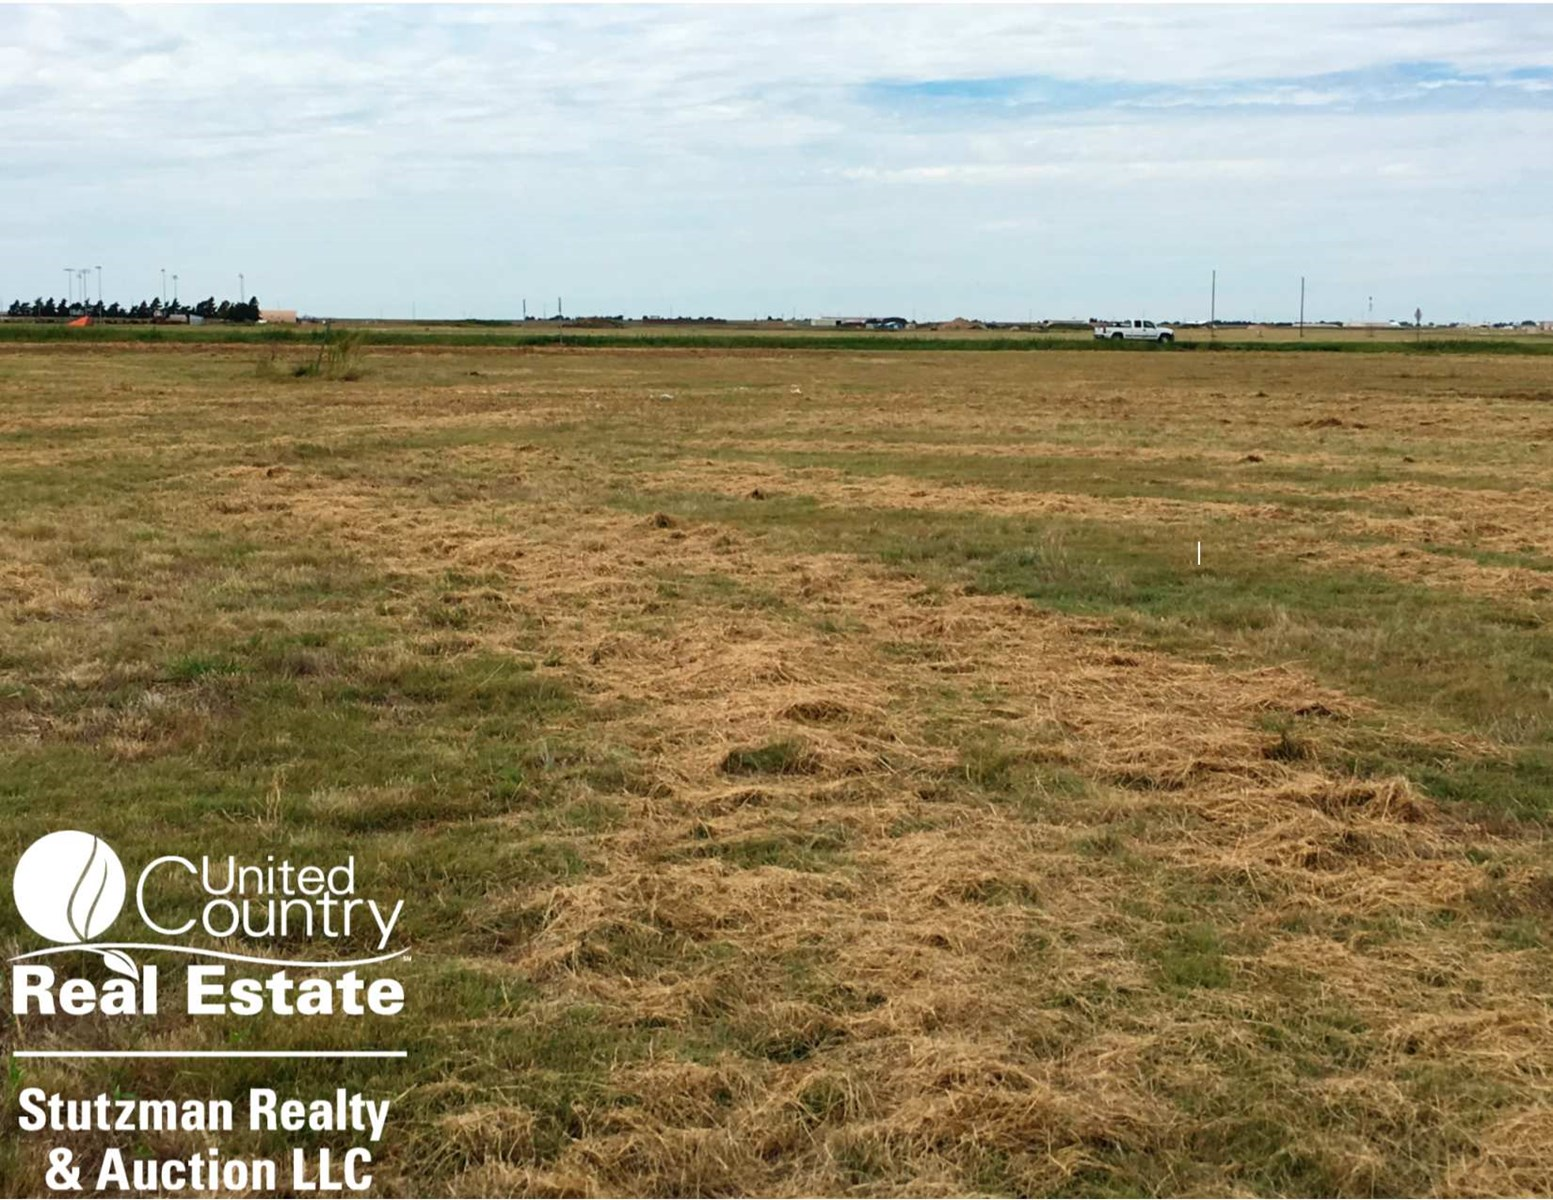 COMMERCIAL PROPERTY  AND VACANT LAND FOR SALE IN ULYSSES, KS